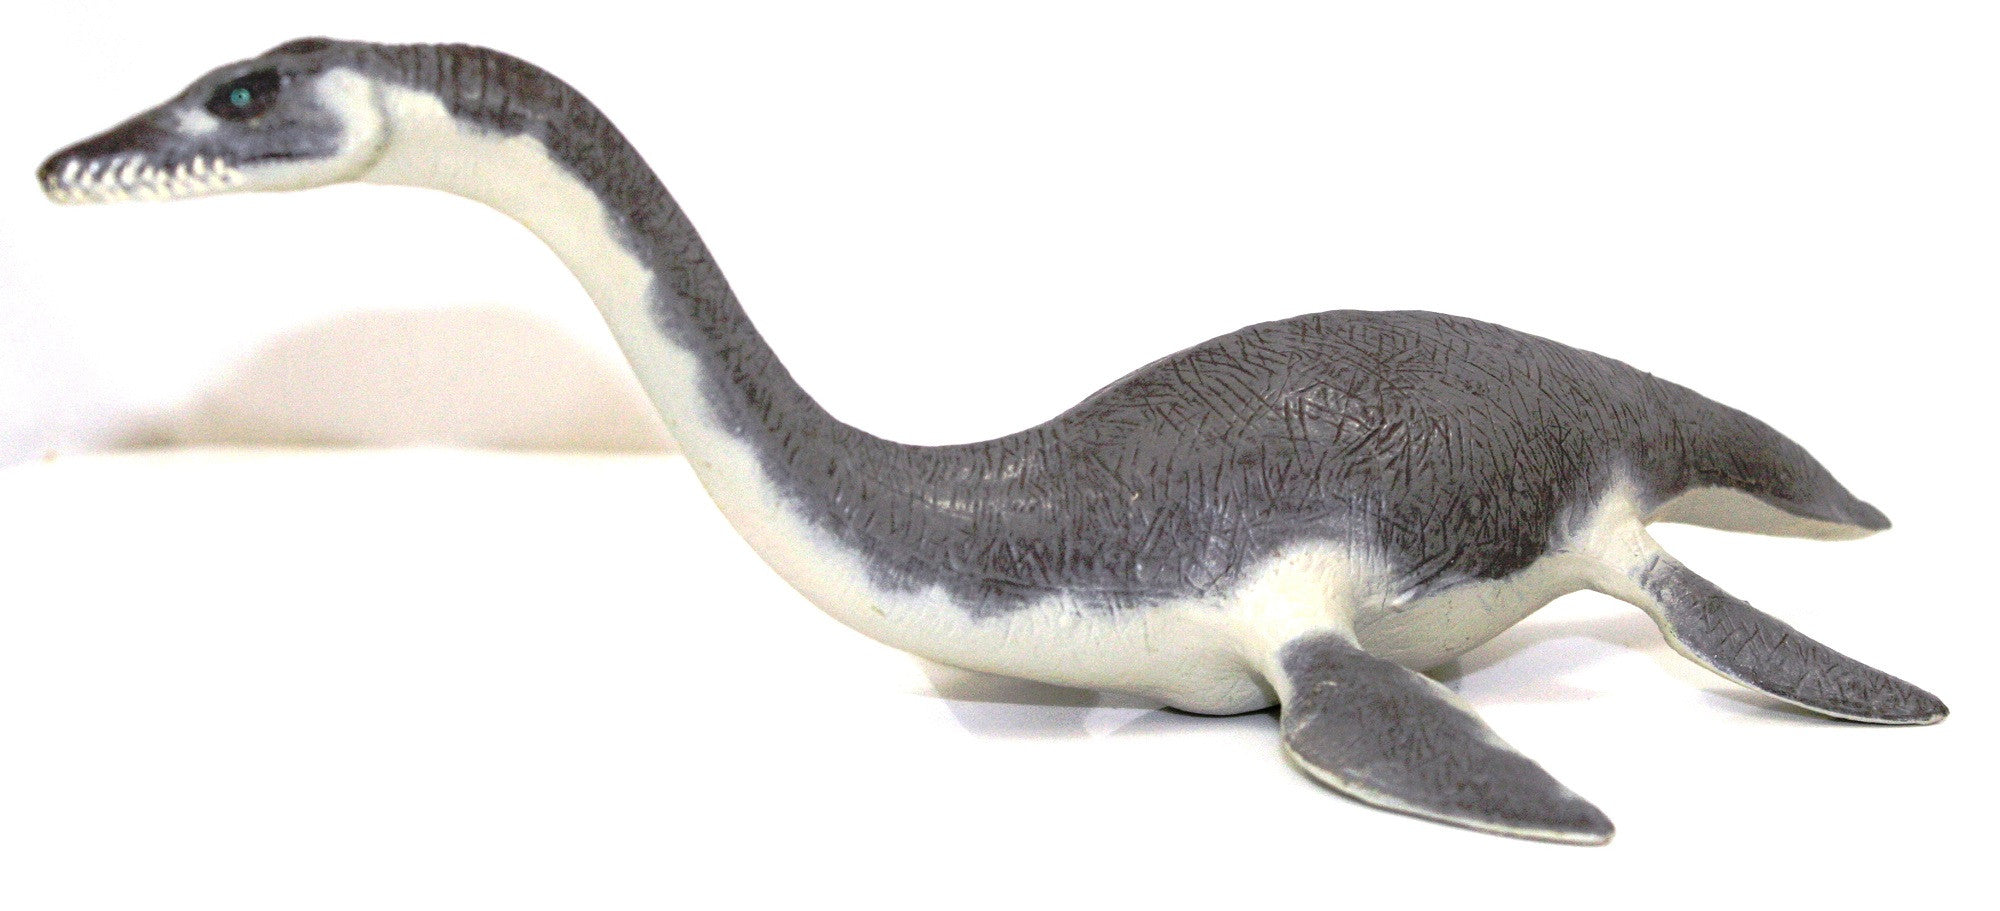 "9.5"" Long Plesiosaurus - Realistic Dinosaur Replica, by Papo - Off The Wall Toys and Gifts"